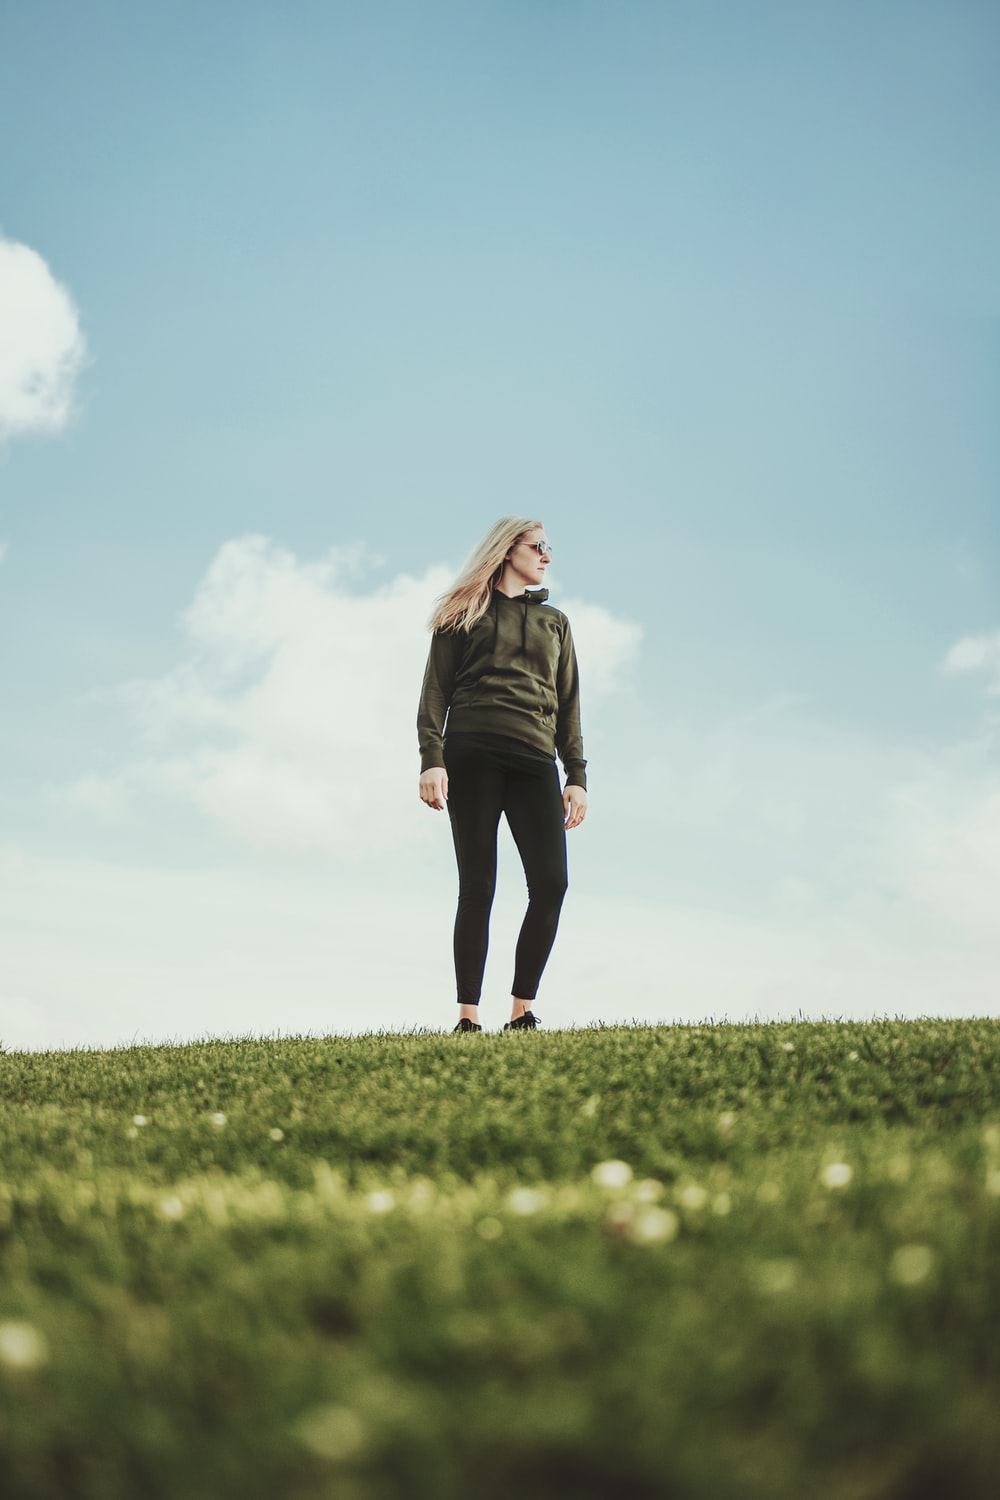 woman in black jacket standing on green grass field under blue sky during daytime